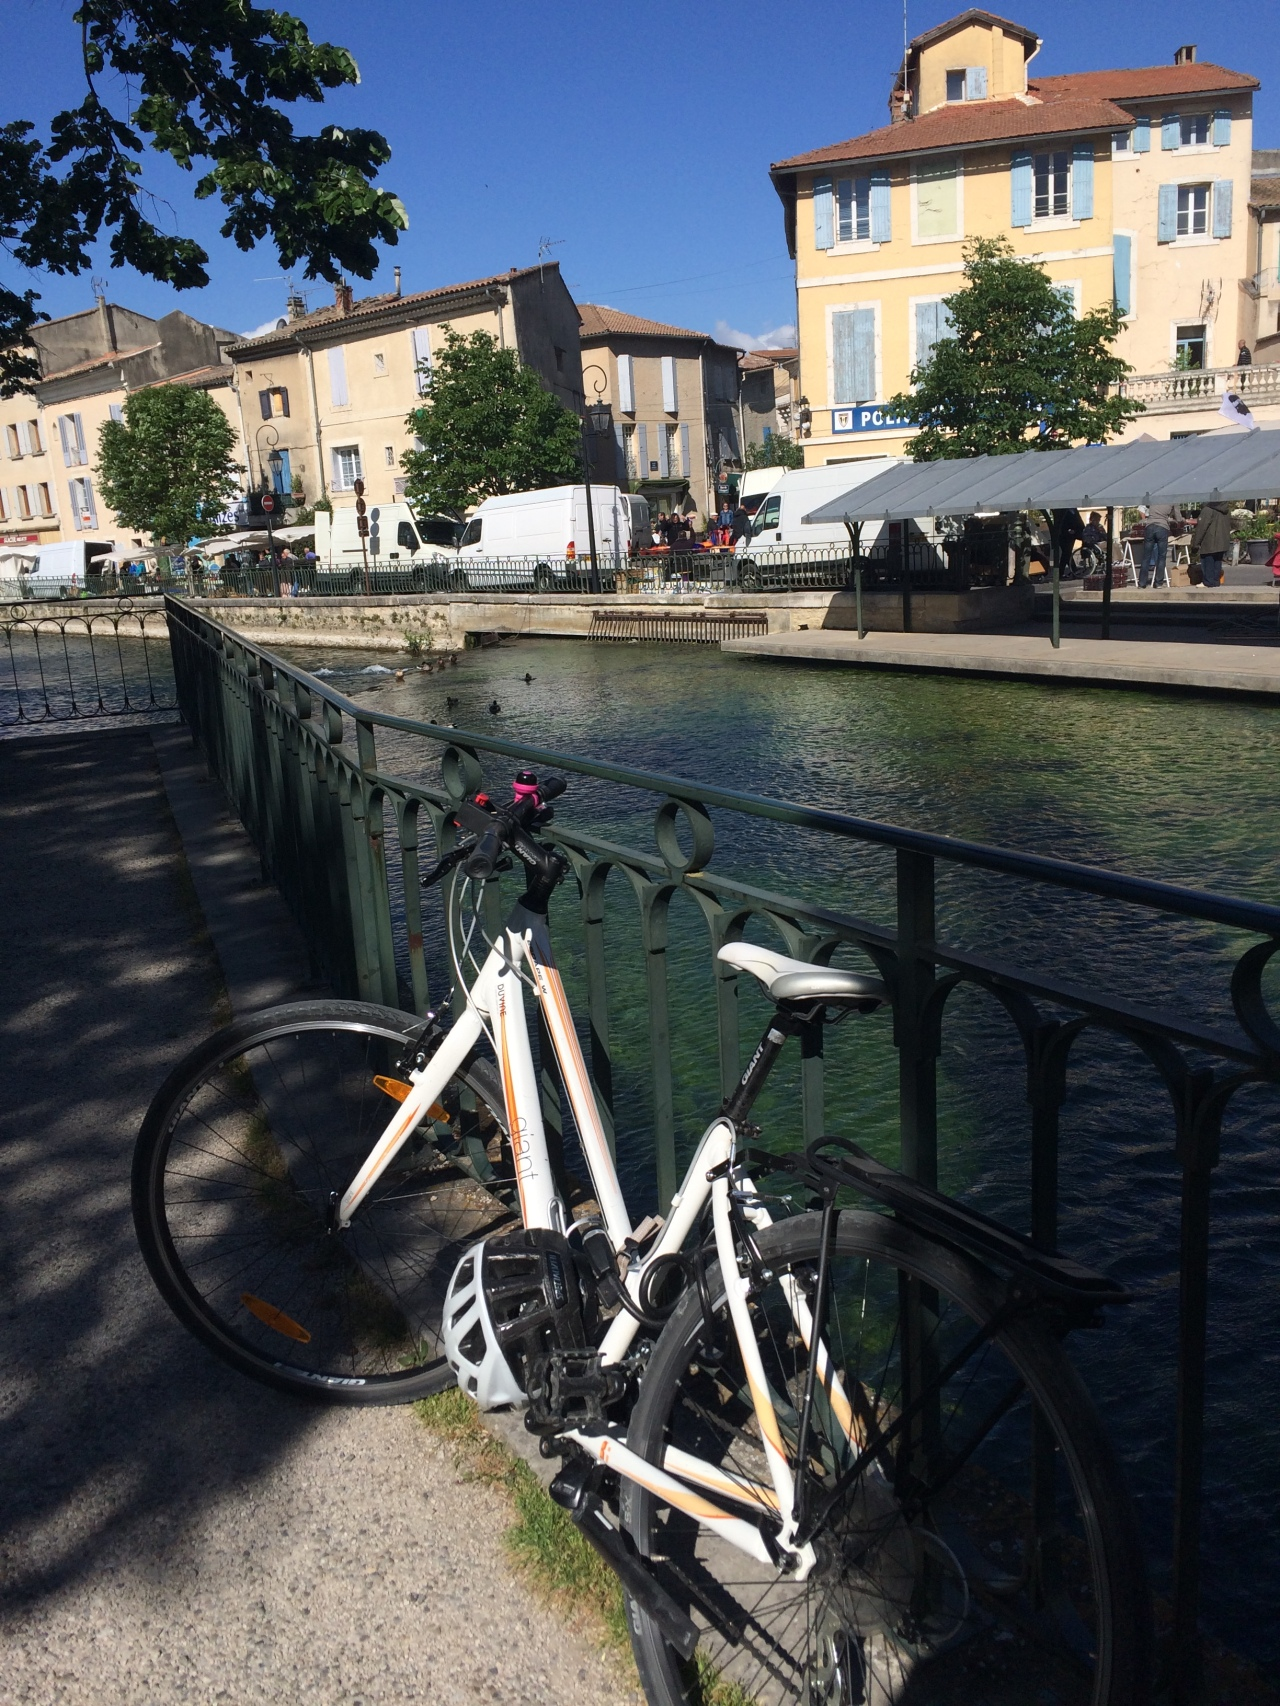 Two Weeks in Provence – Day 6 – Back on the bike & head-on into the Mistral